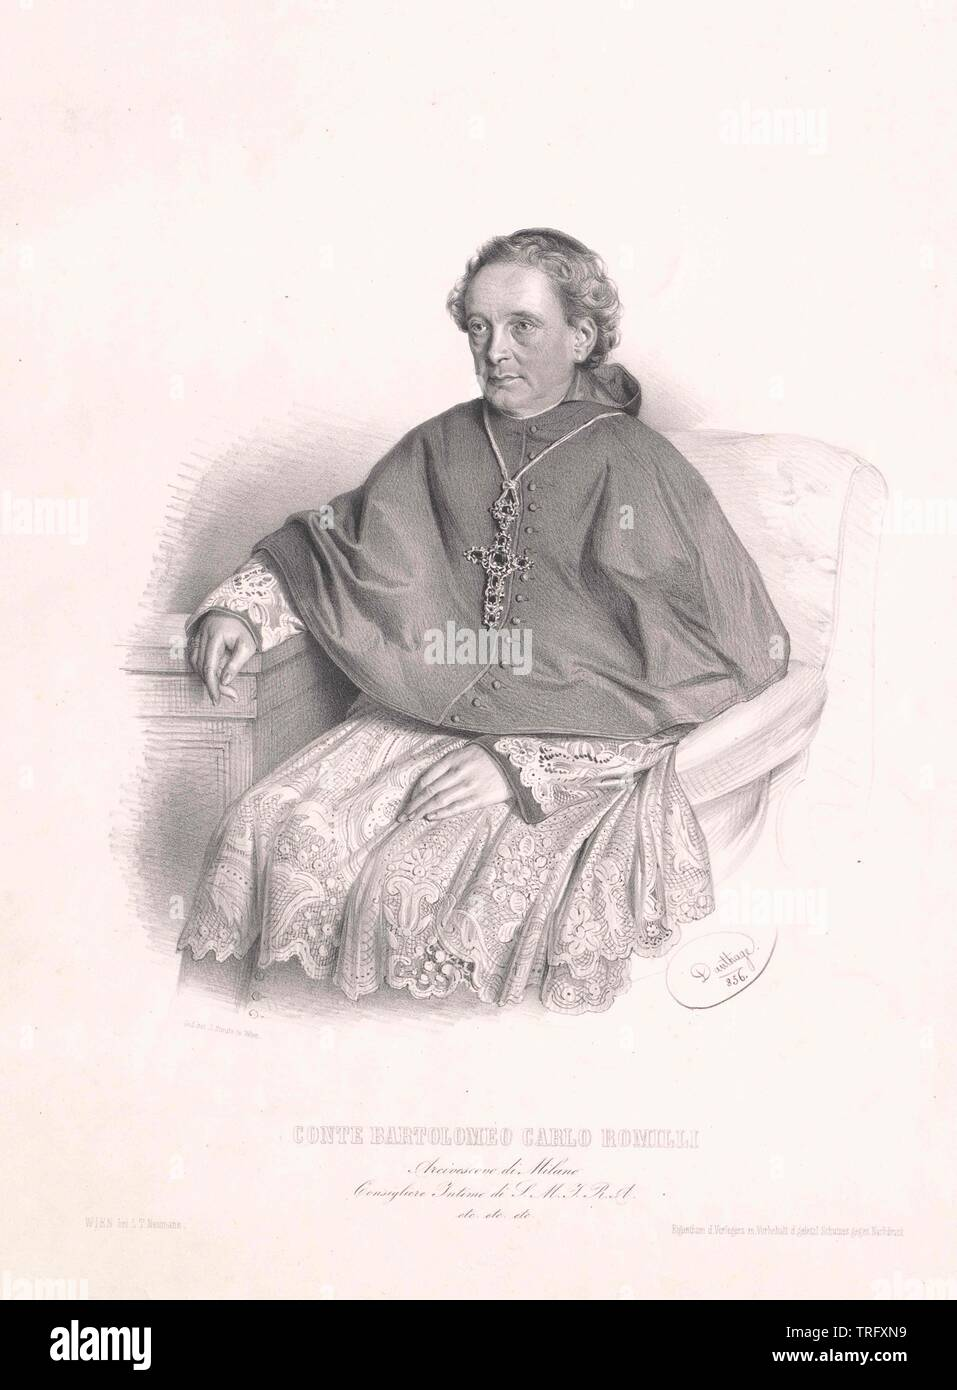 Romilli, Bartolomeo Carlo Conte, archbishop of Milan, Additional-Rights-Clearance-Info-Not-Available - Stock Image